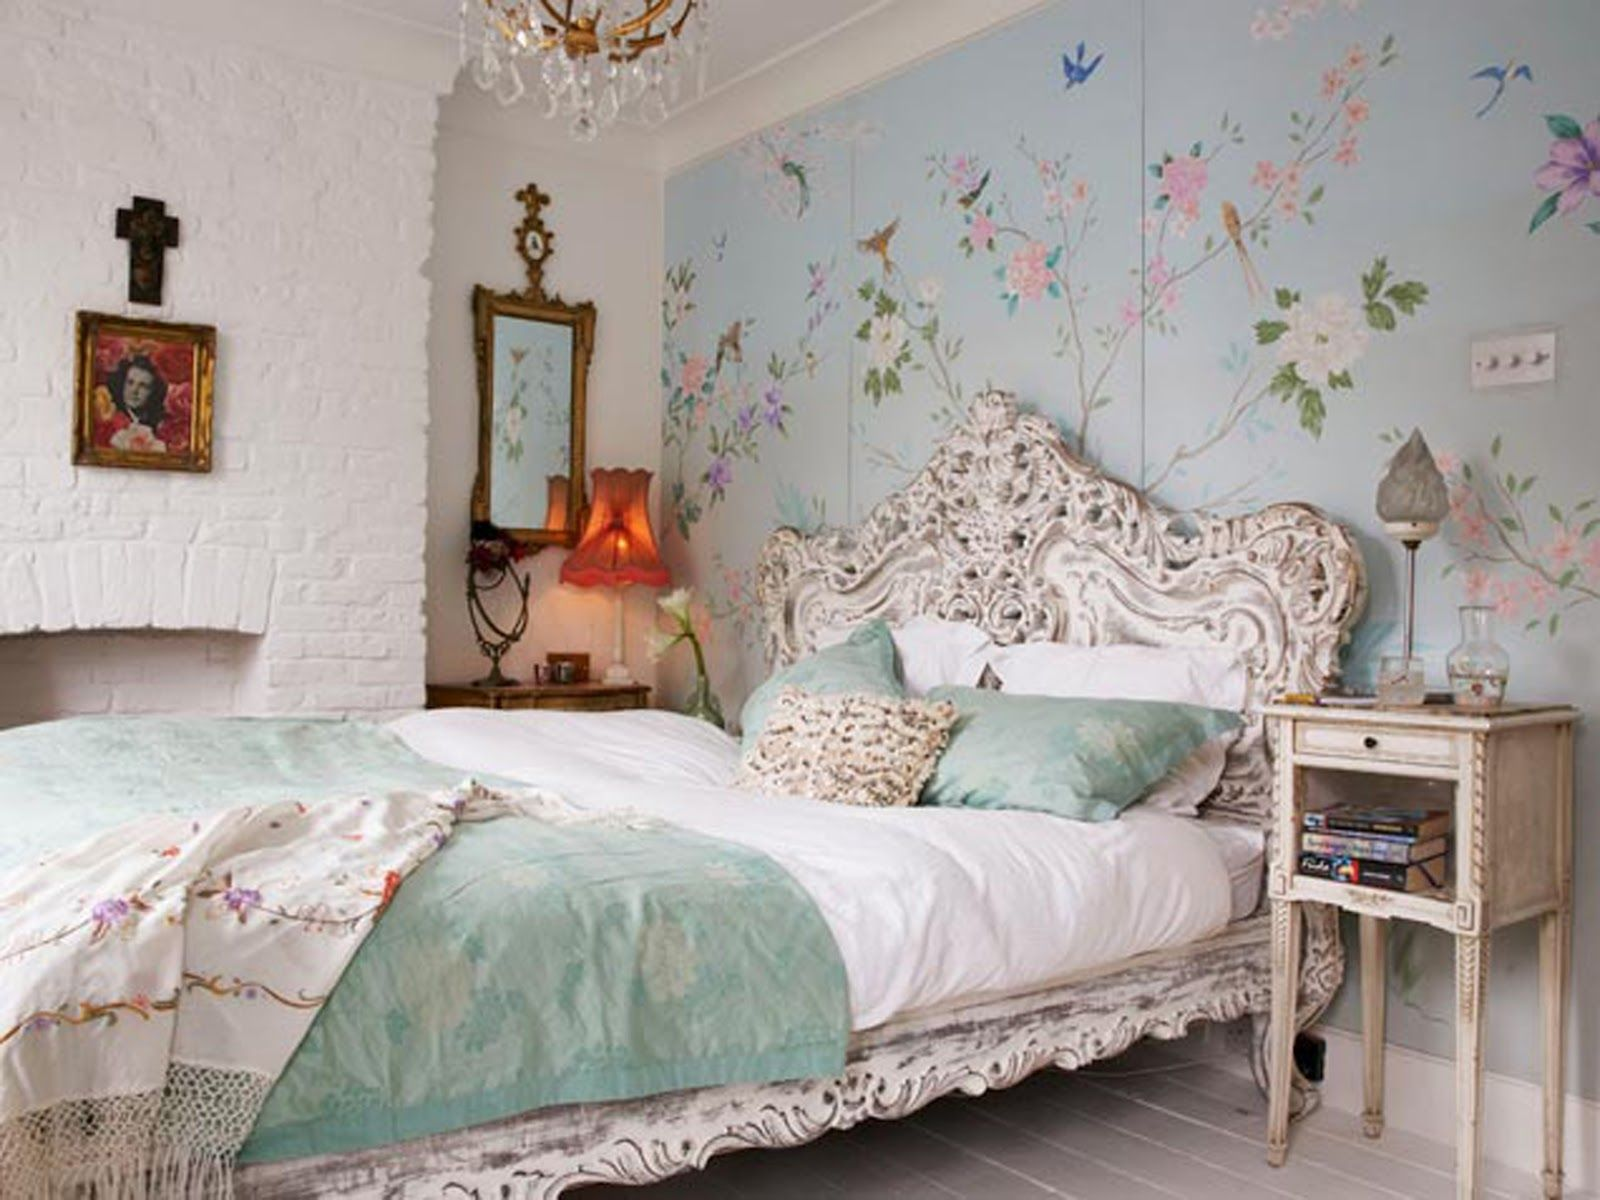 interior design ideas bedroom vintage. Stunning Vintage Bedroom Ideas: Modern Wallpaper Design Idea In Blue For Ideas Used Floral Decor And Classic Bed Frame Furniture Interior I